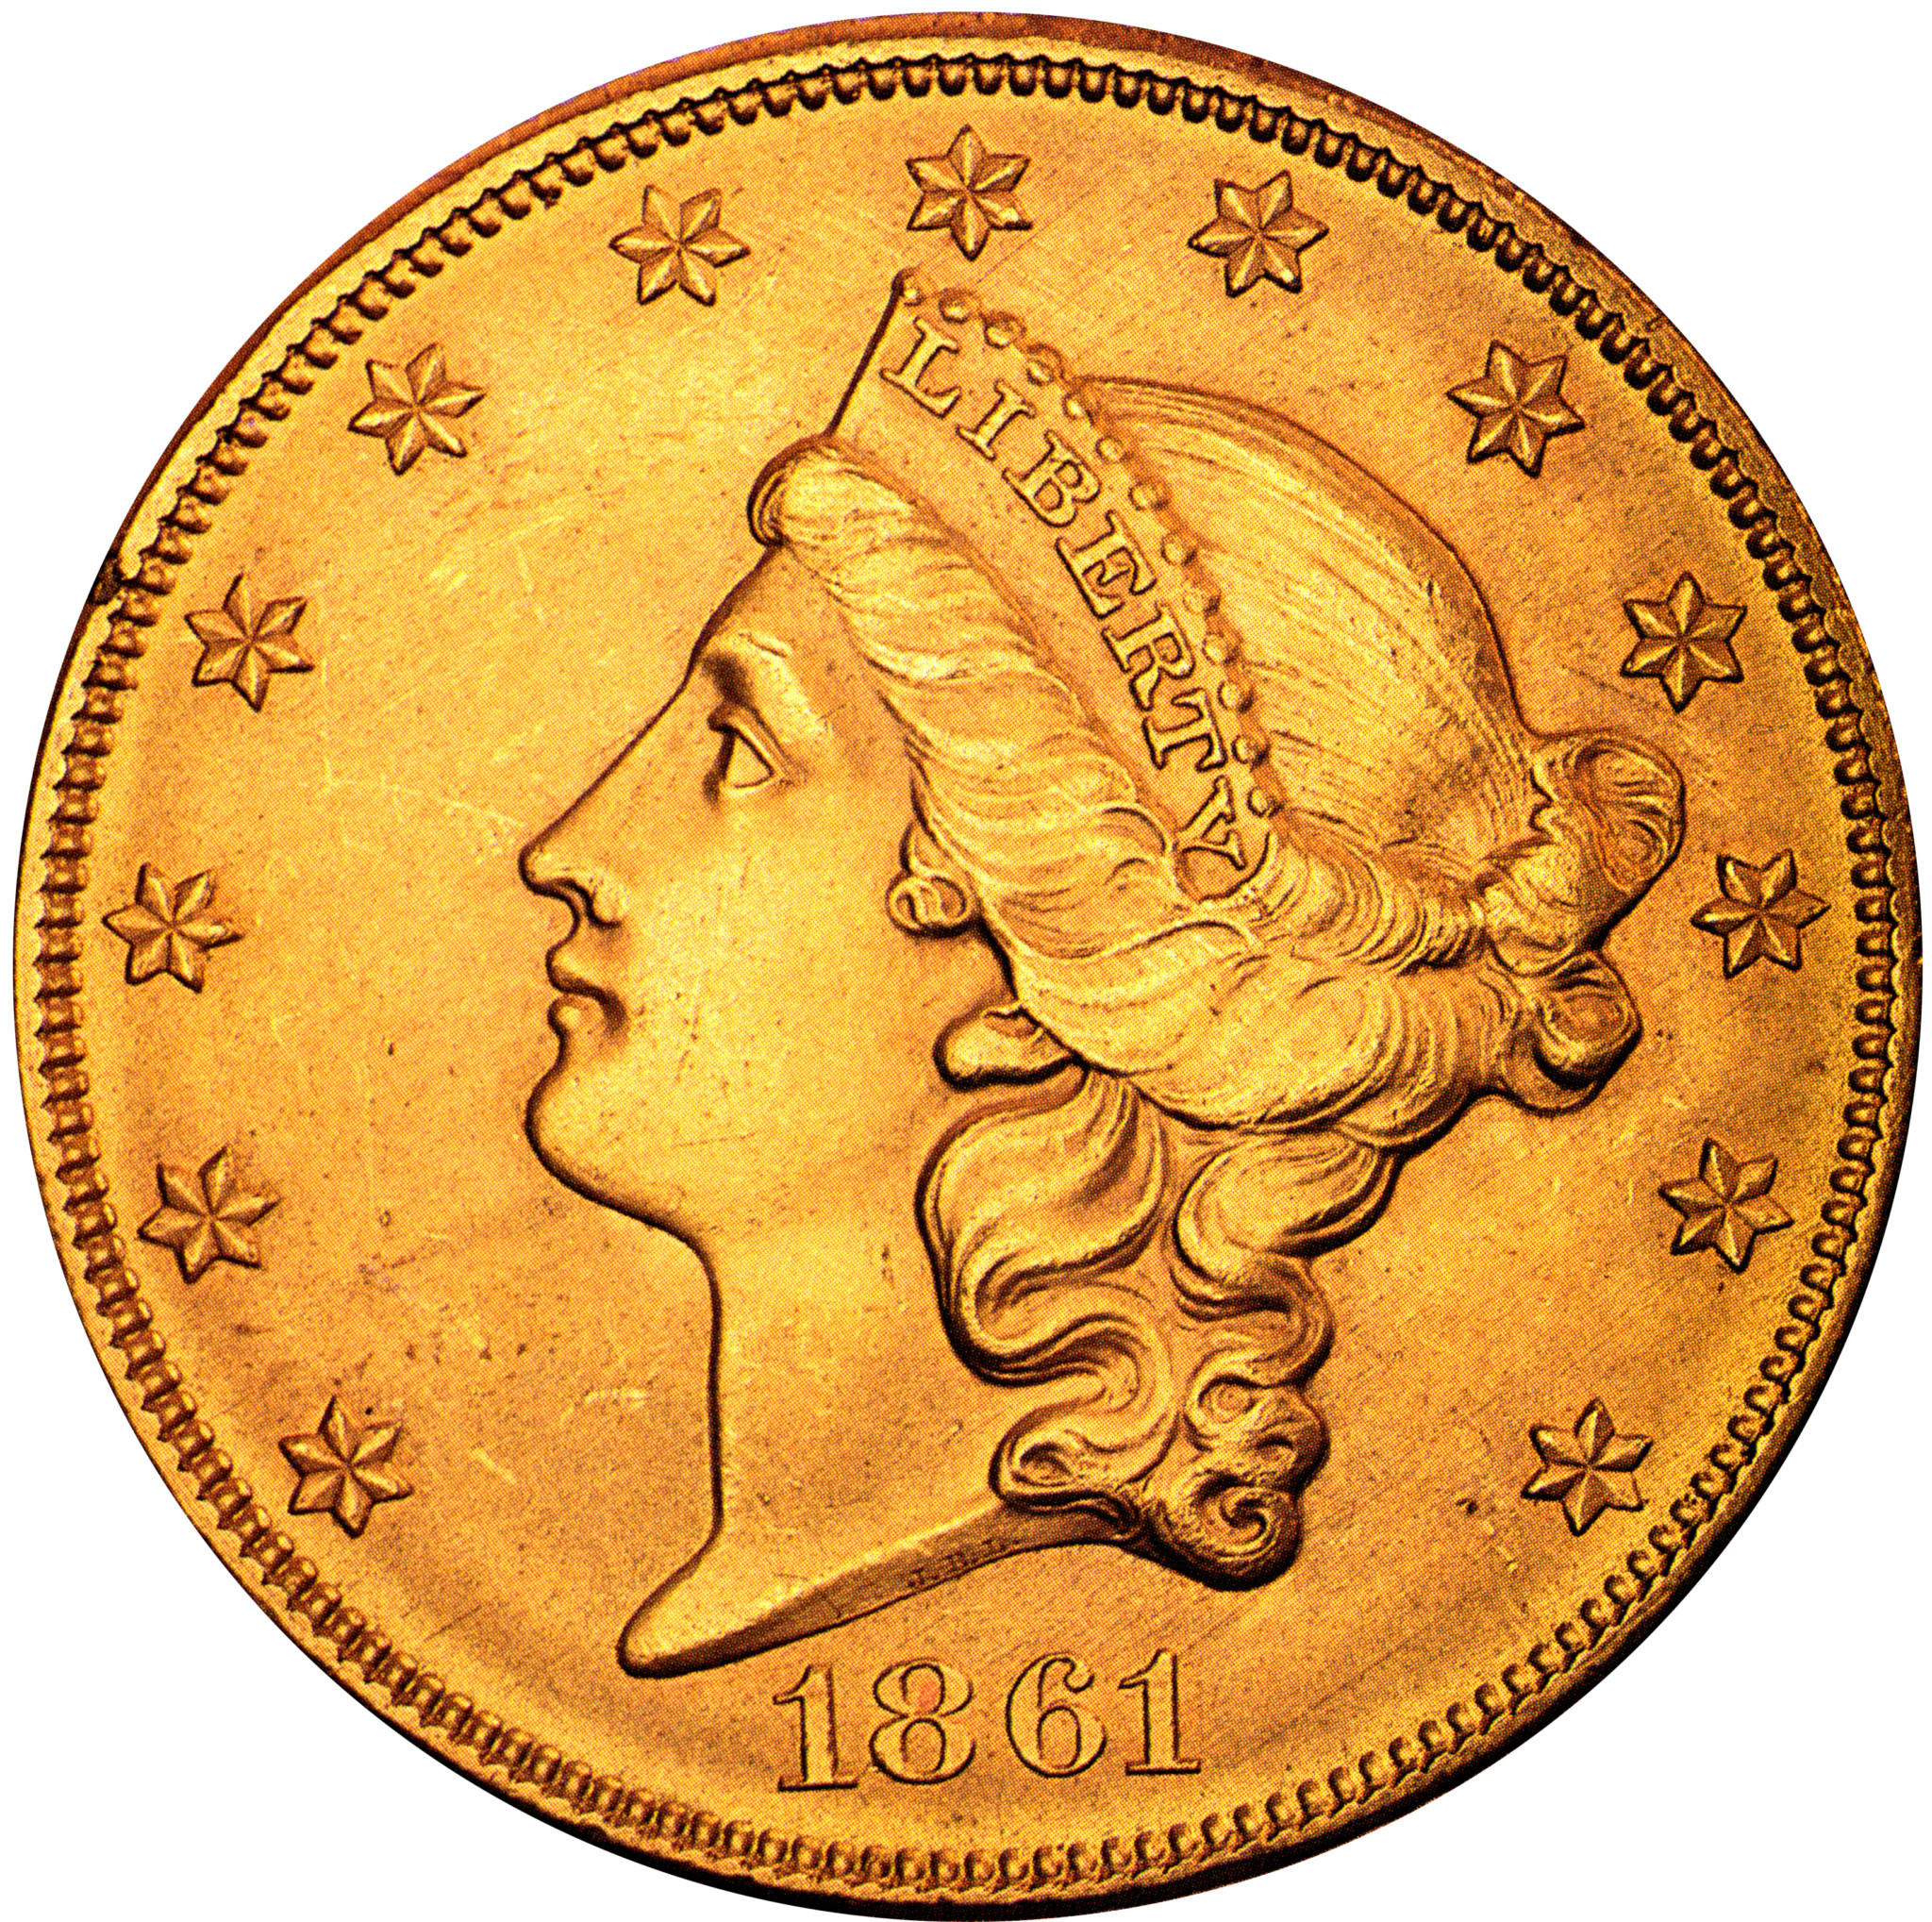 what is a double eagle coin worth